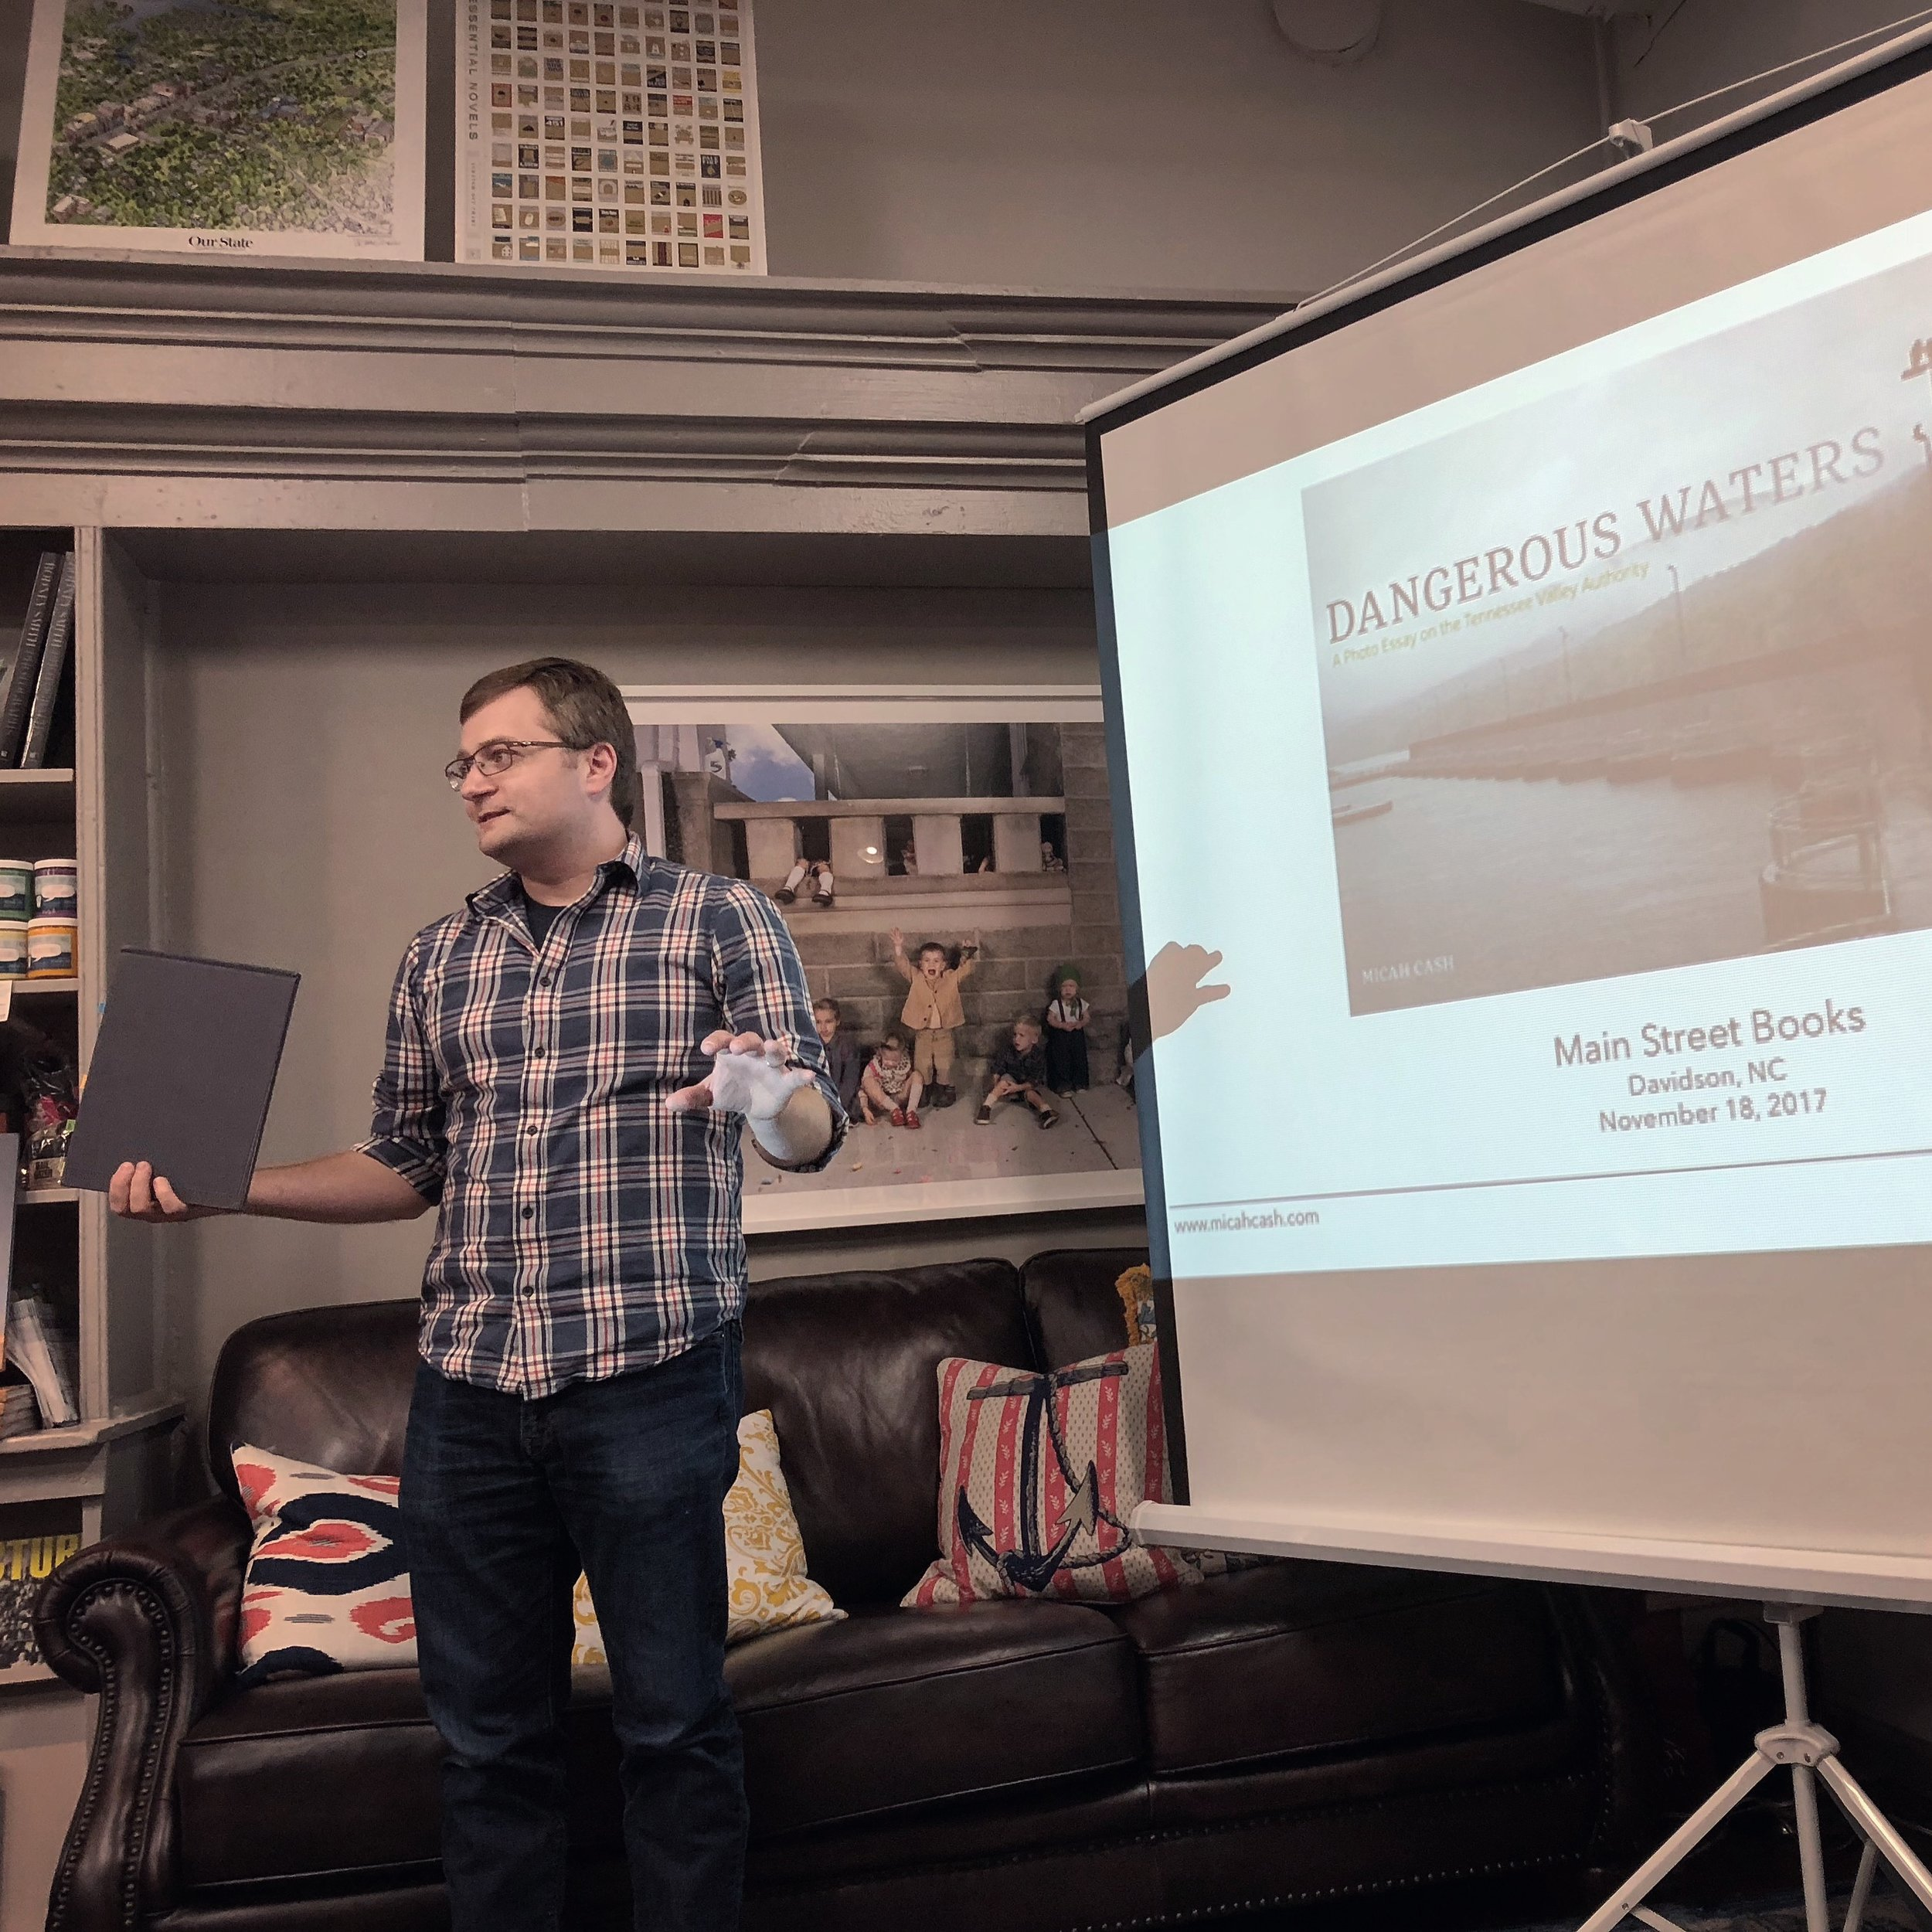 Discussing Dangerous Waters at Main Street Books (Davidson, NC) on November 18, 2017.